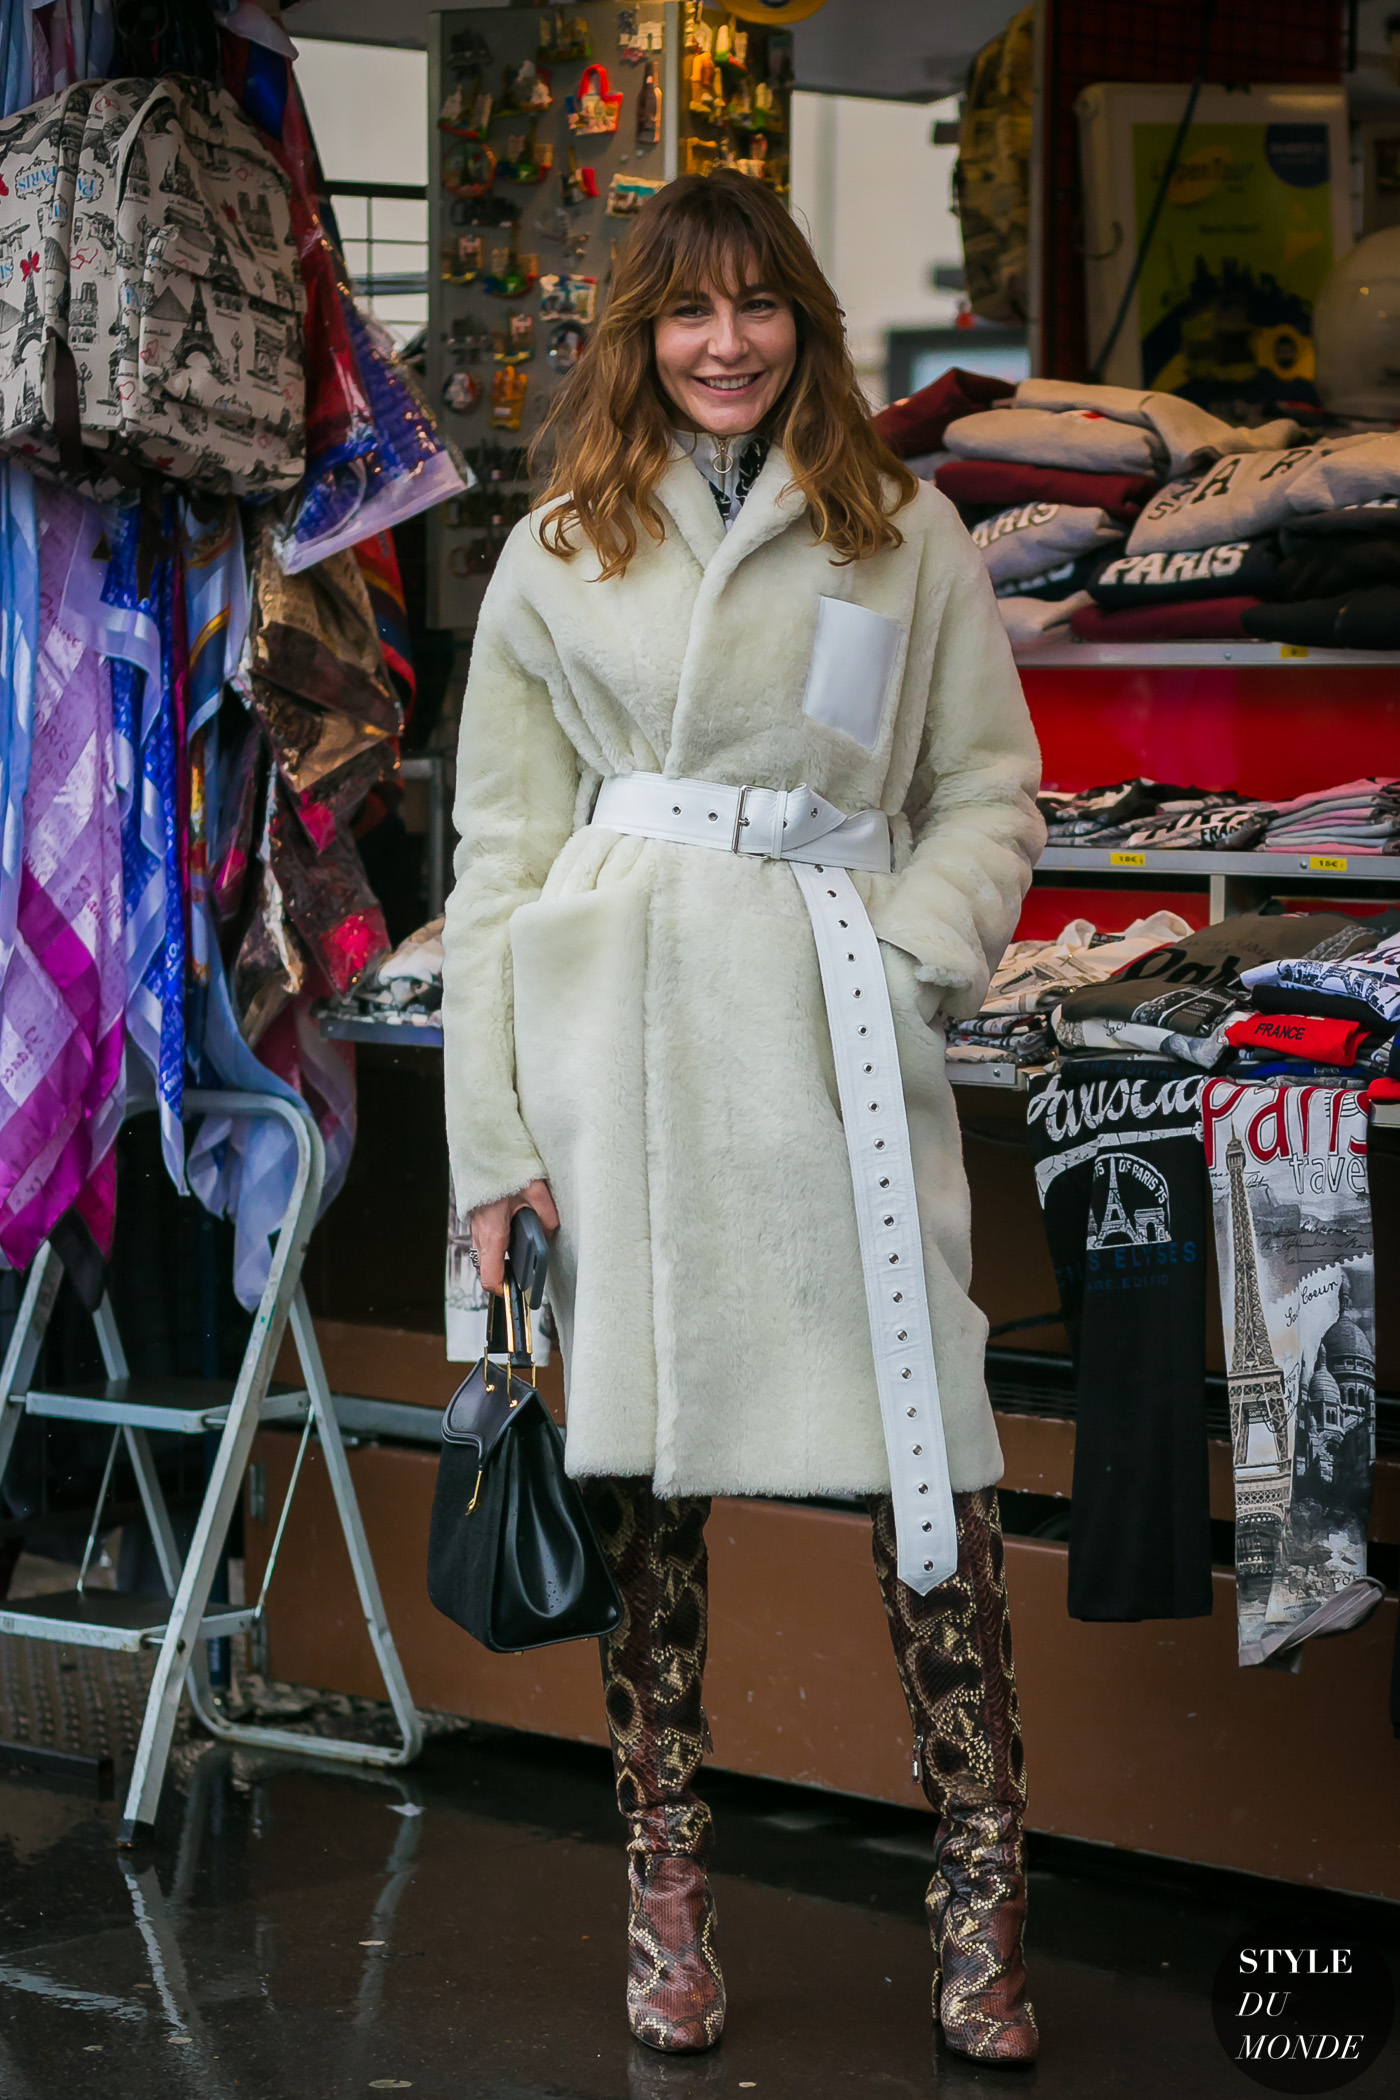 Ece Sukan by STYLEDUMONDE Street Style Fashion Photography0E2A8839